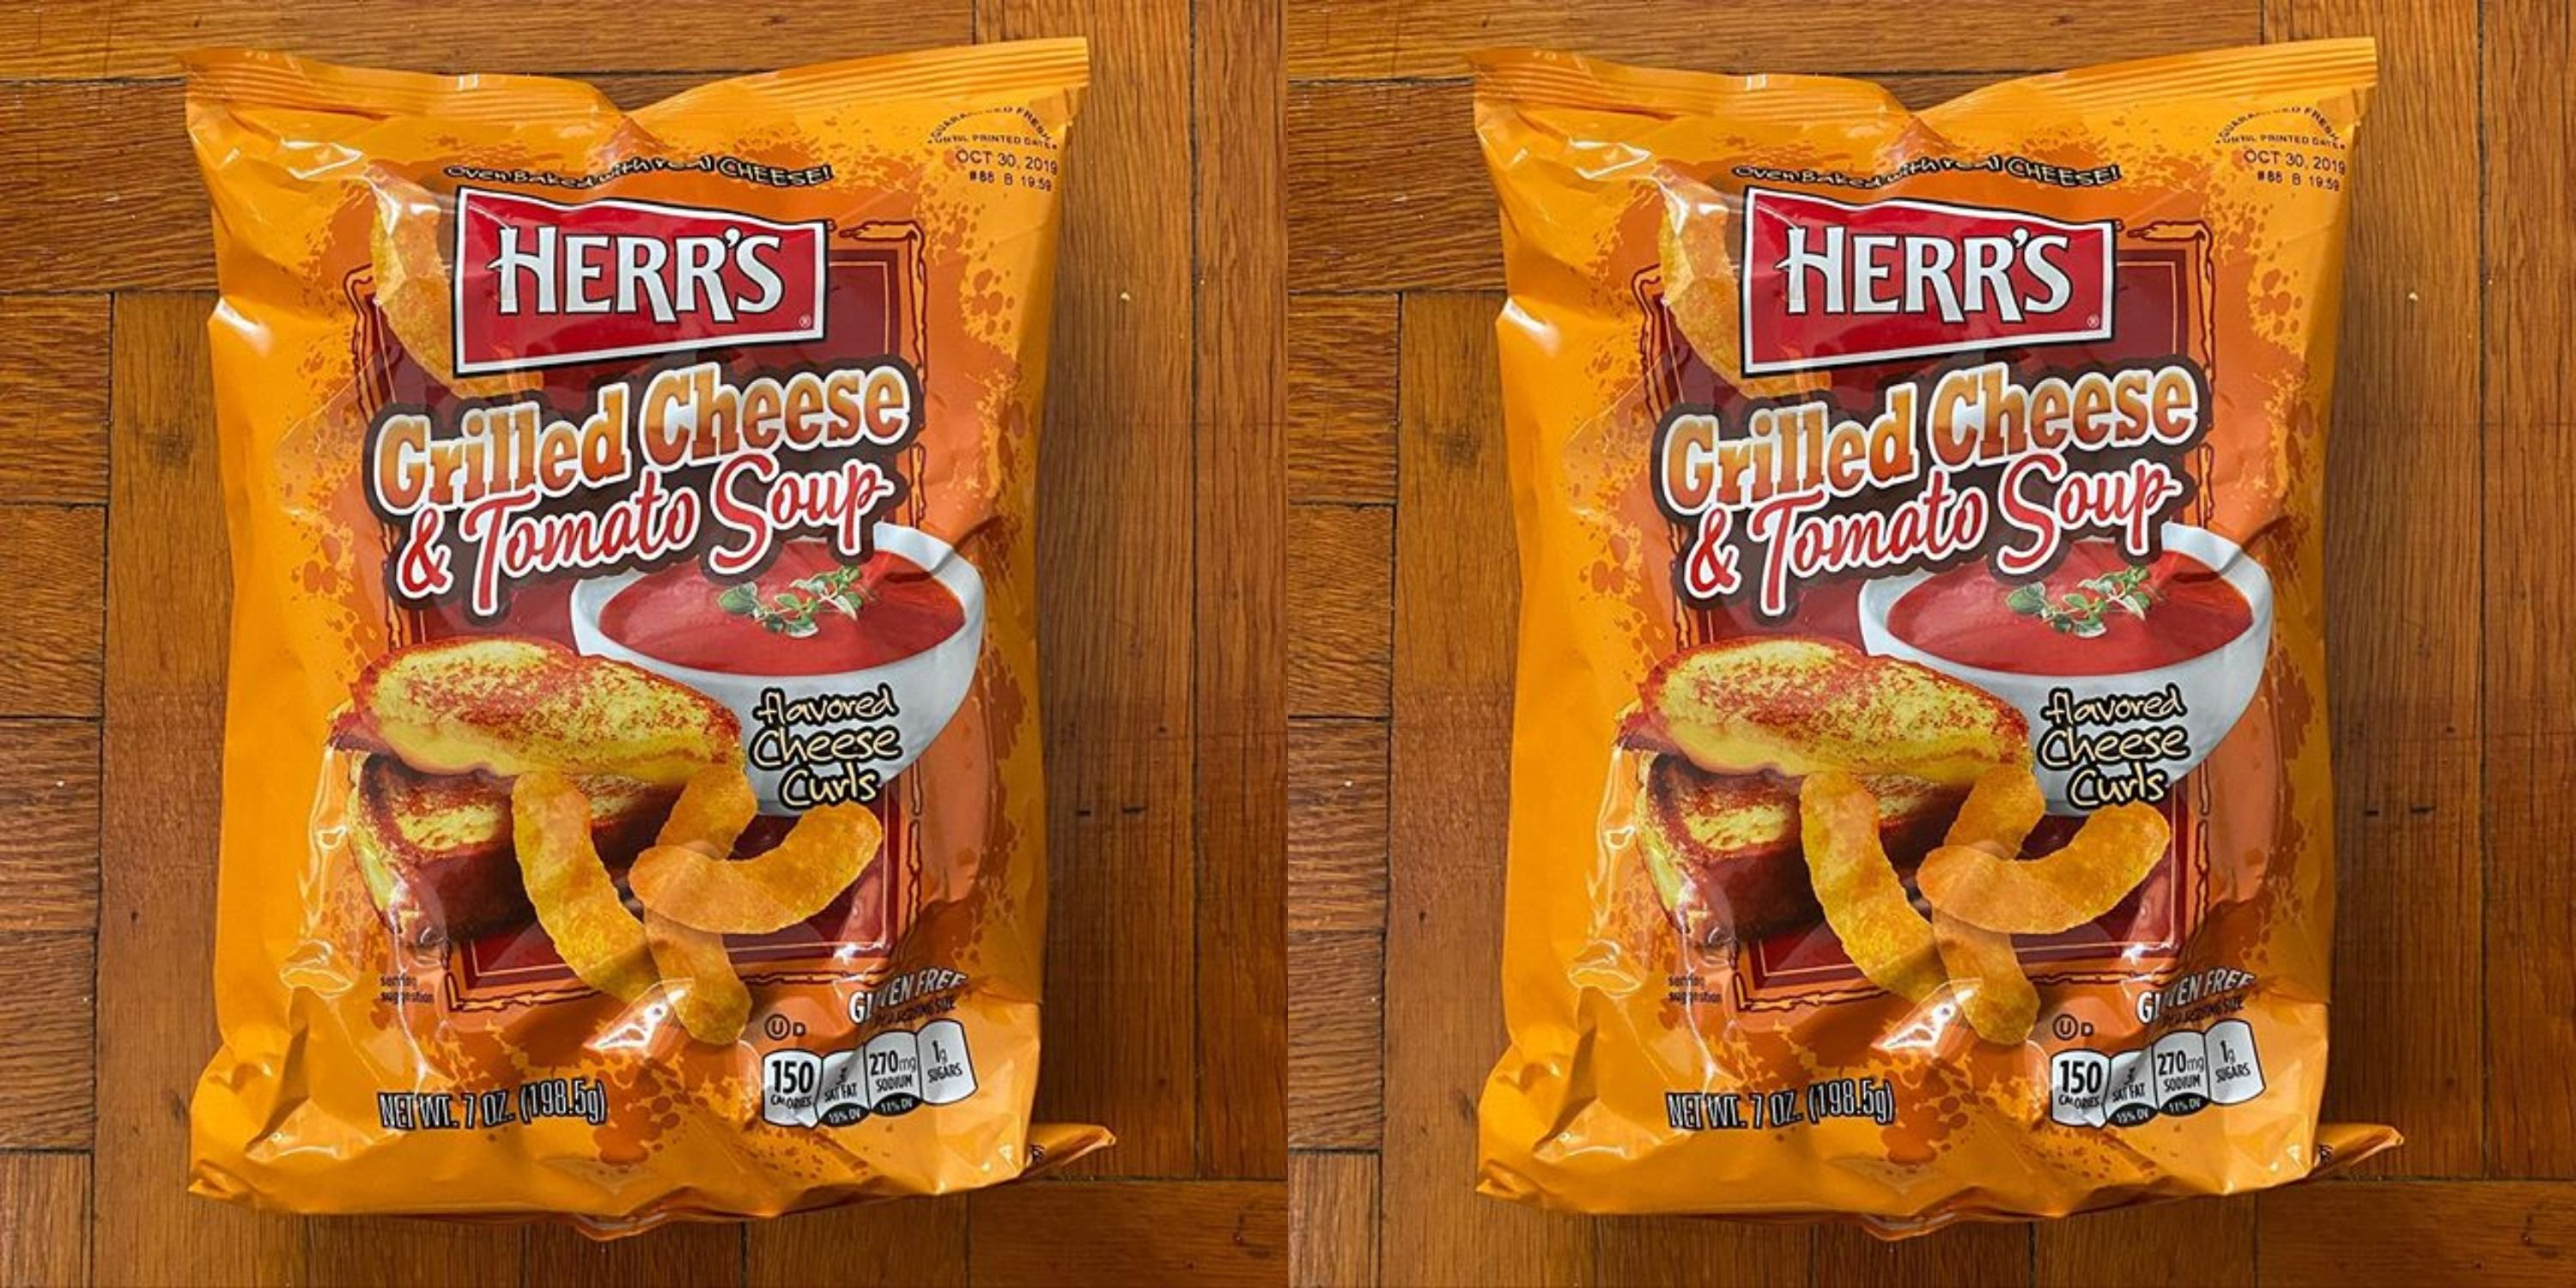 These Cheese Curls Taste Like Grilled Cheese And Tomato Soup So They're The Perfect Winter Snack